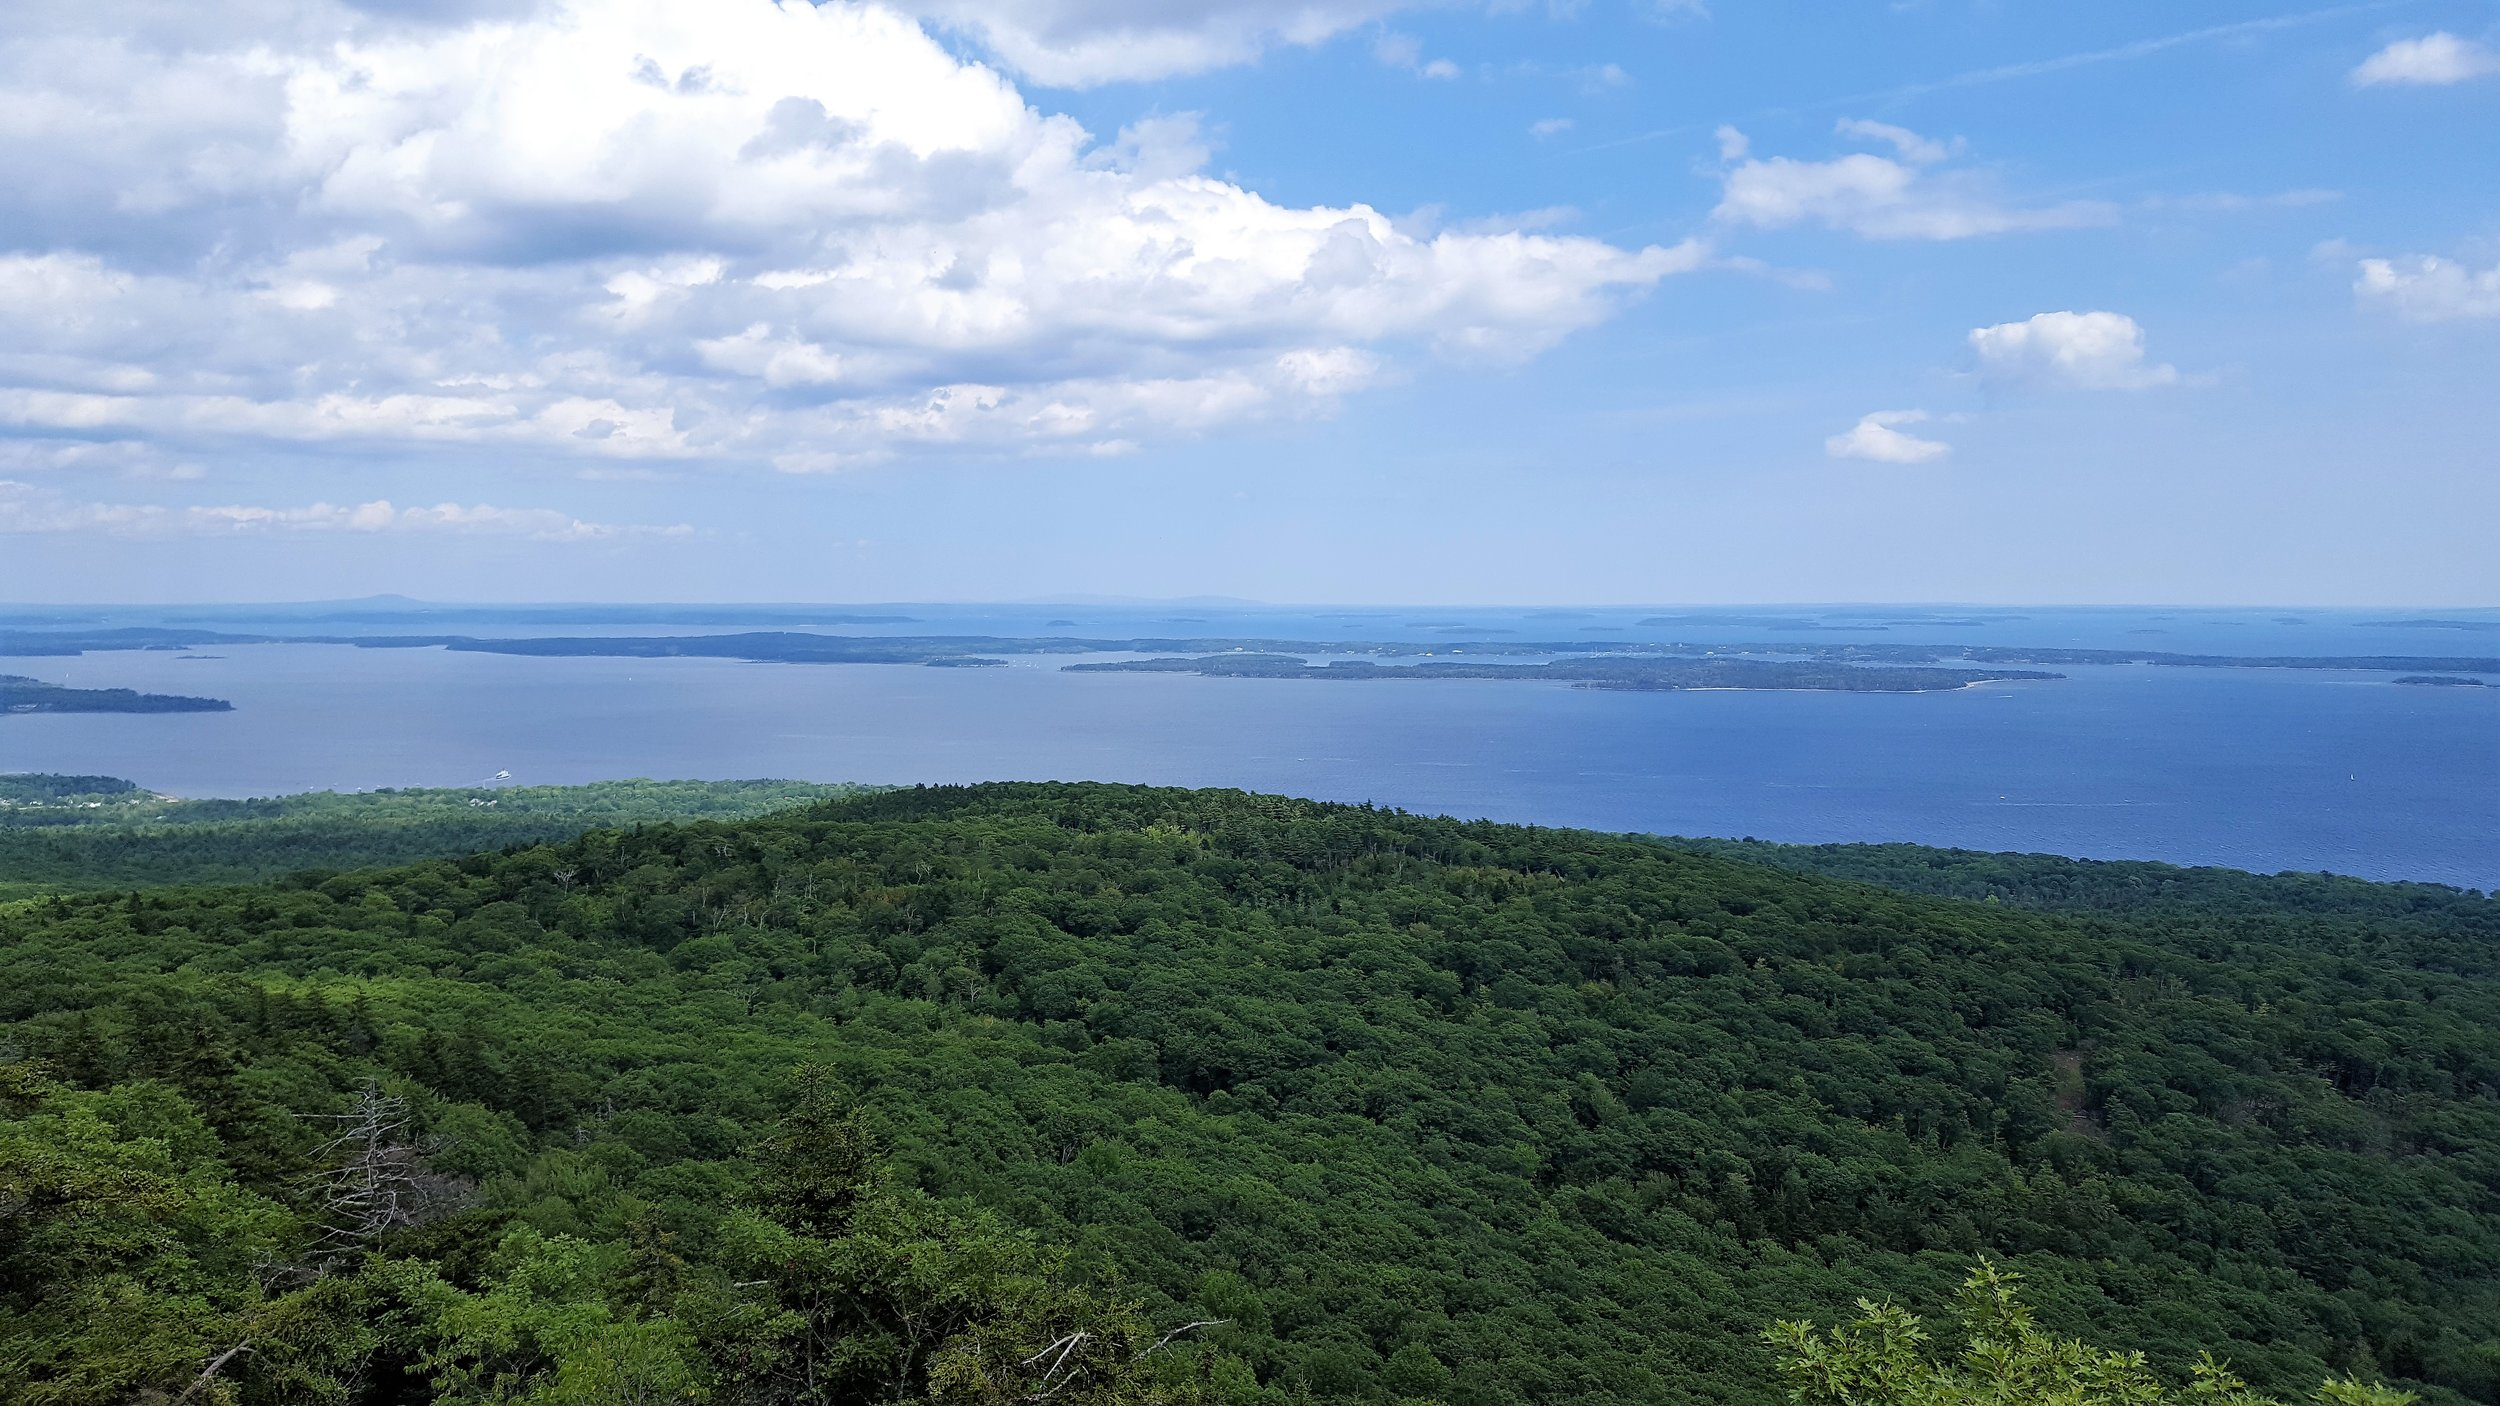 The view from the summit, looking across Isleboro toward MDI